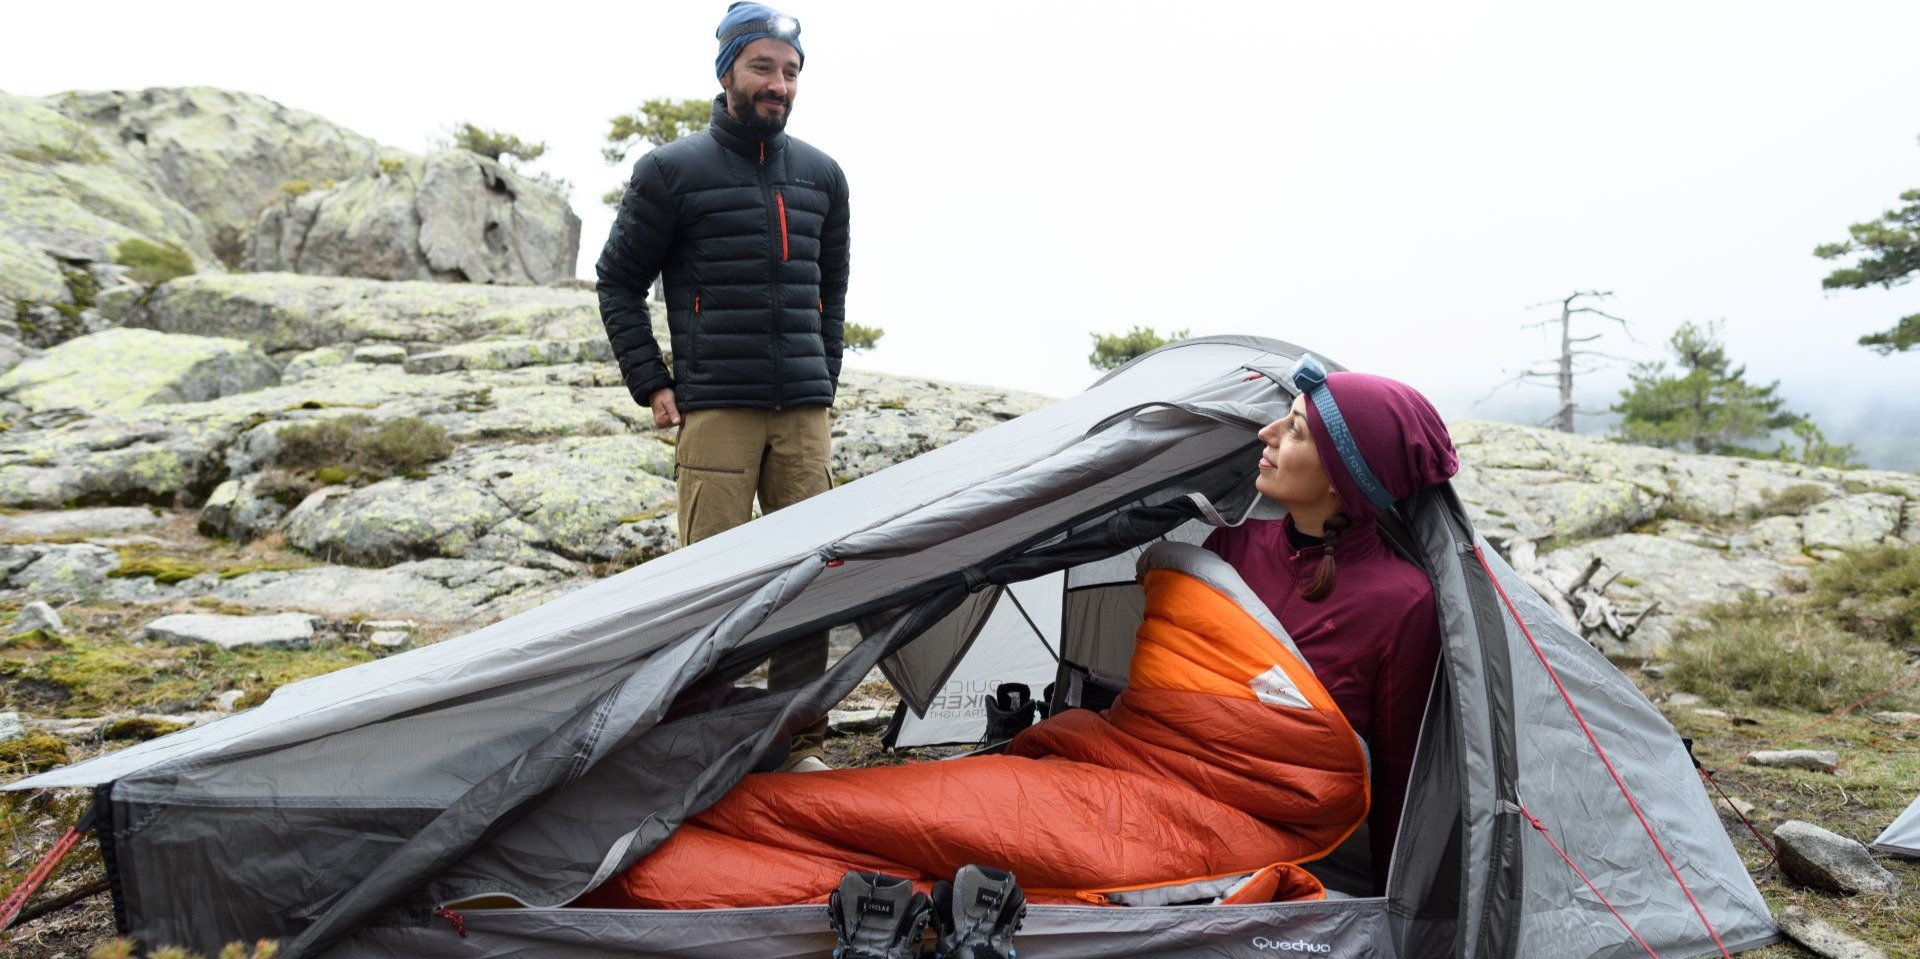 How To Choose A Sleeping Bag For Backpacking?